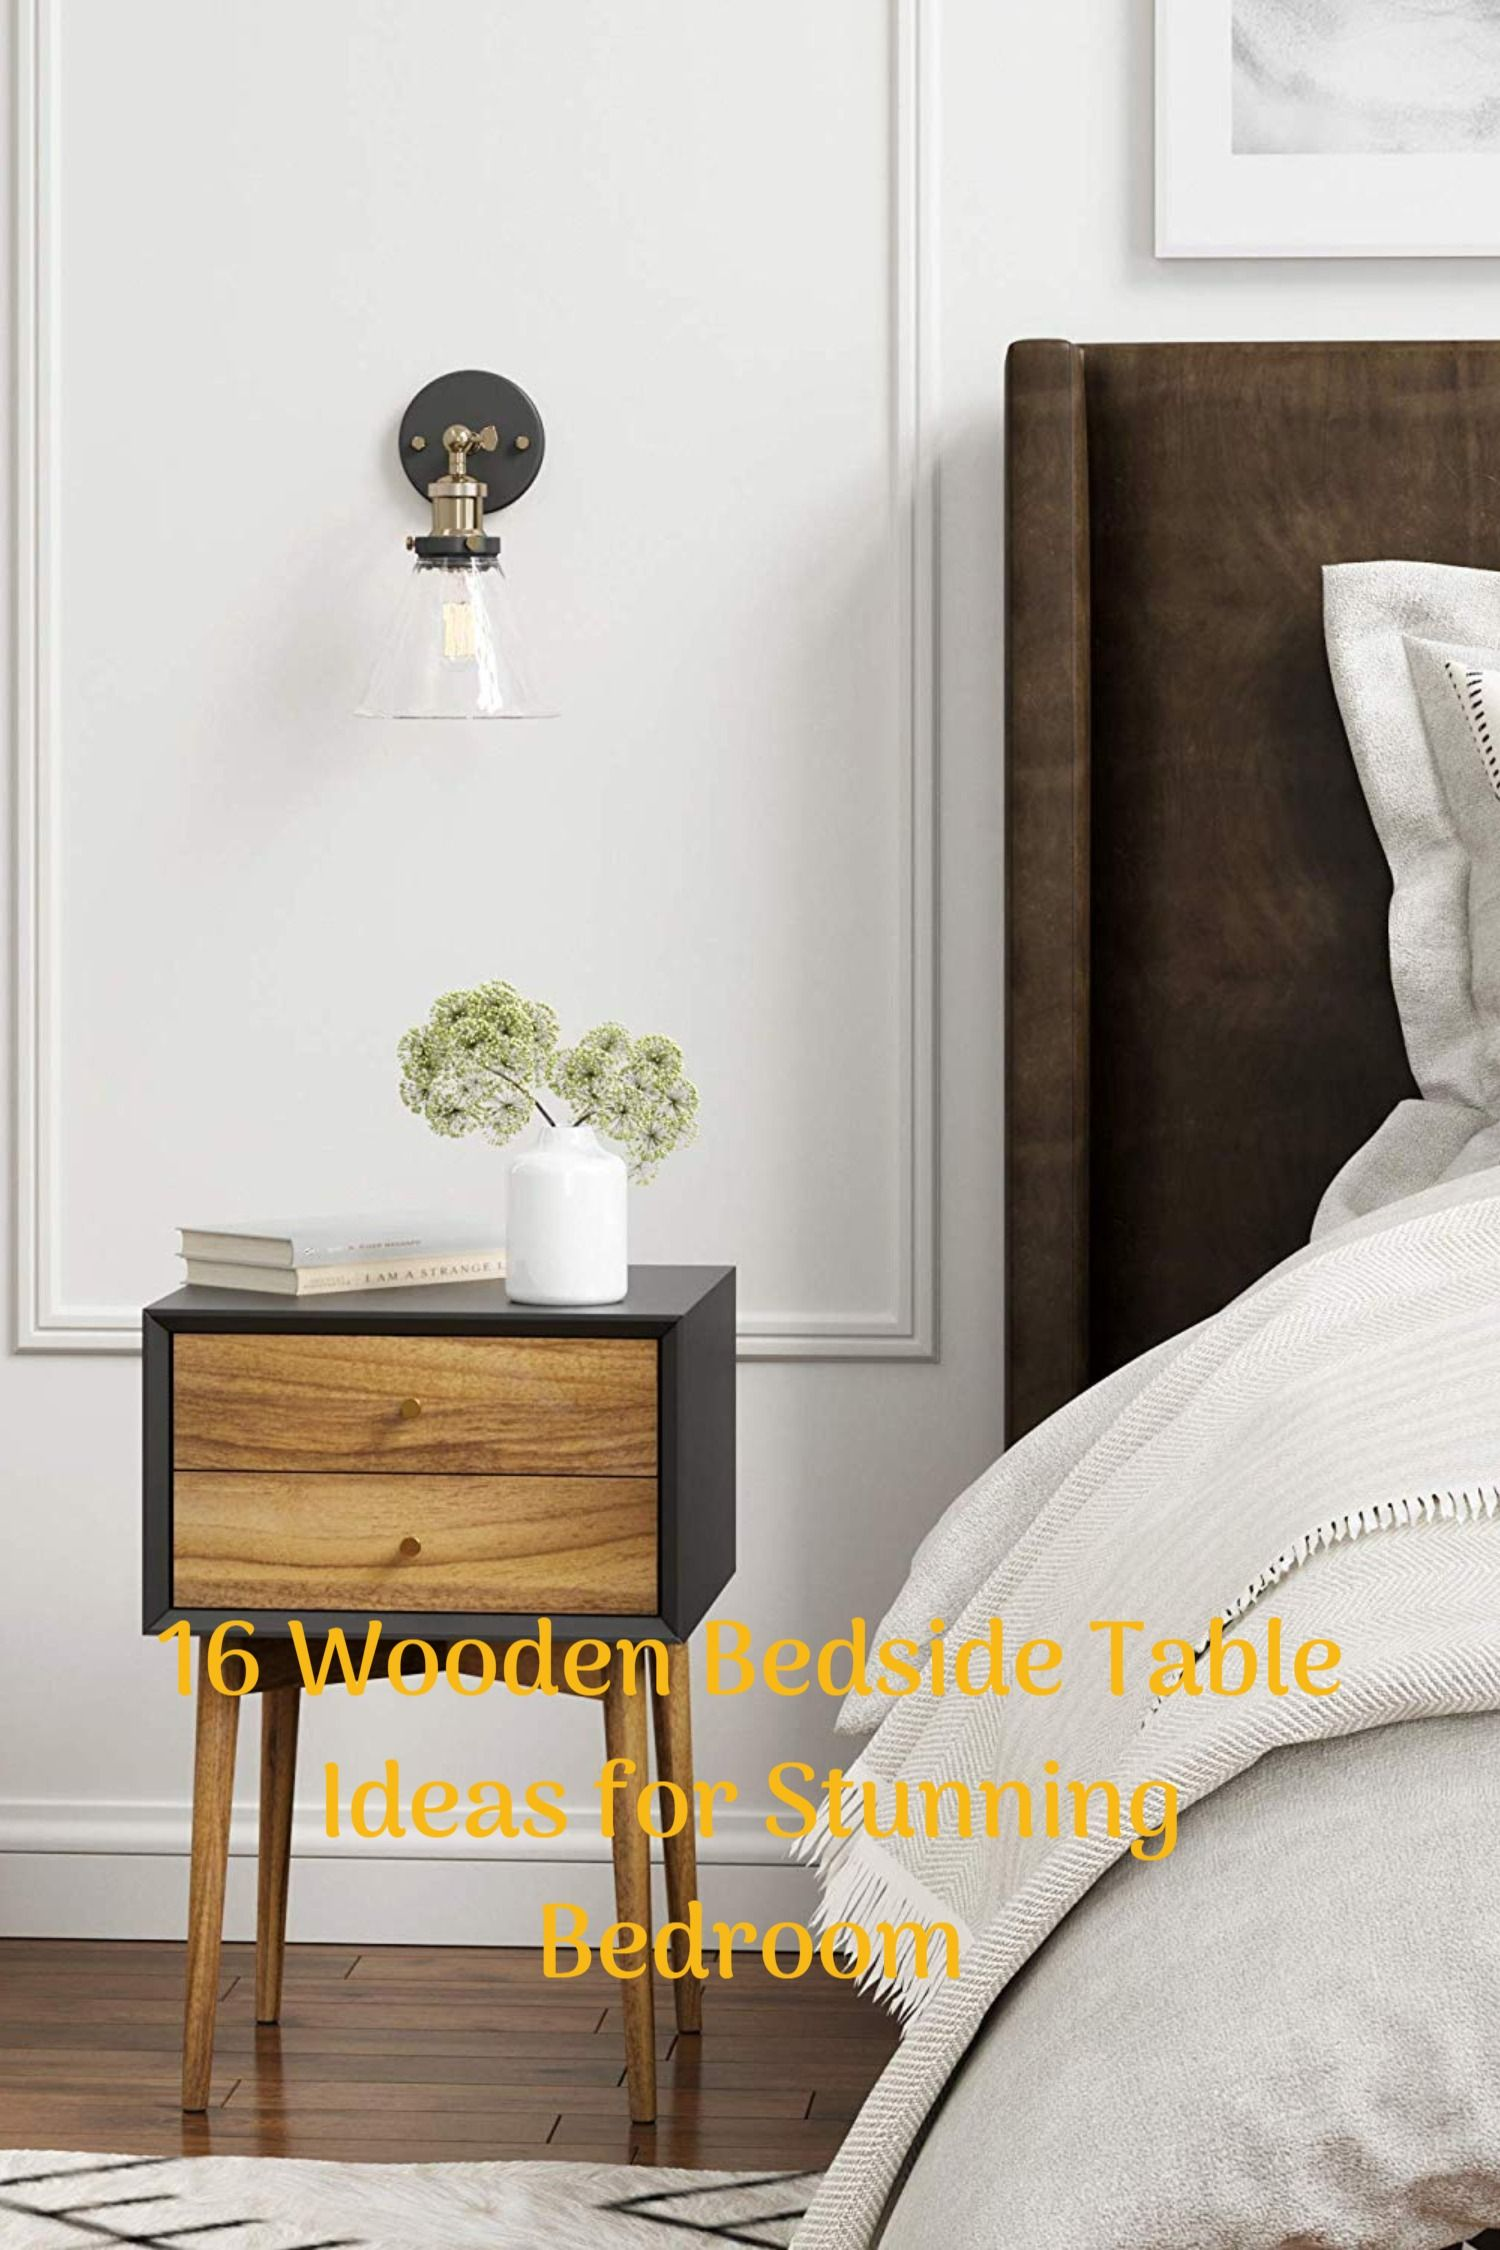 No Ideas On How Wooden Bedside Tables Design Could Be This